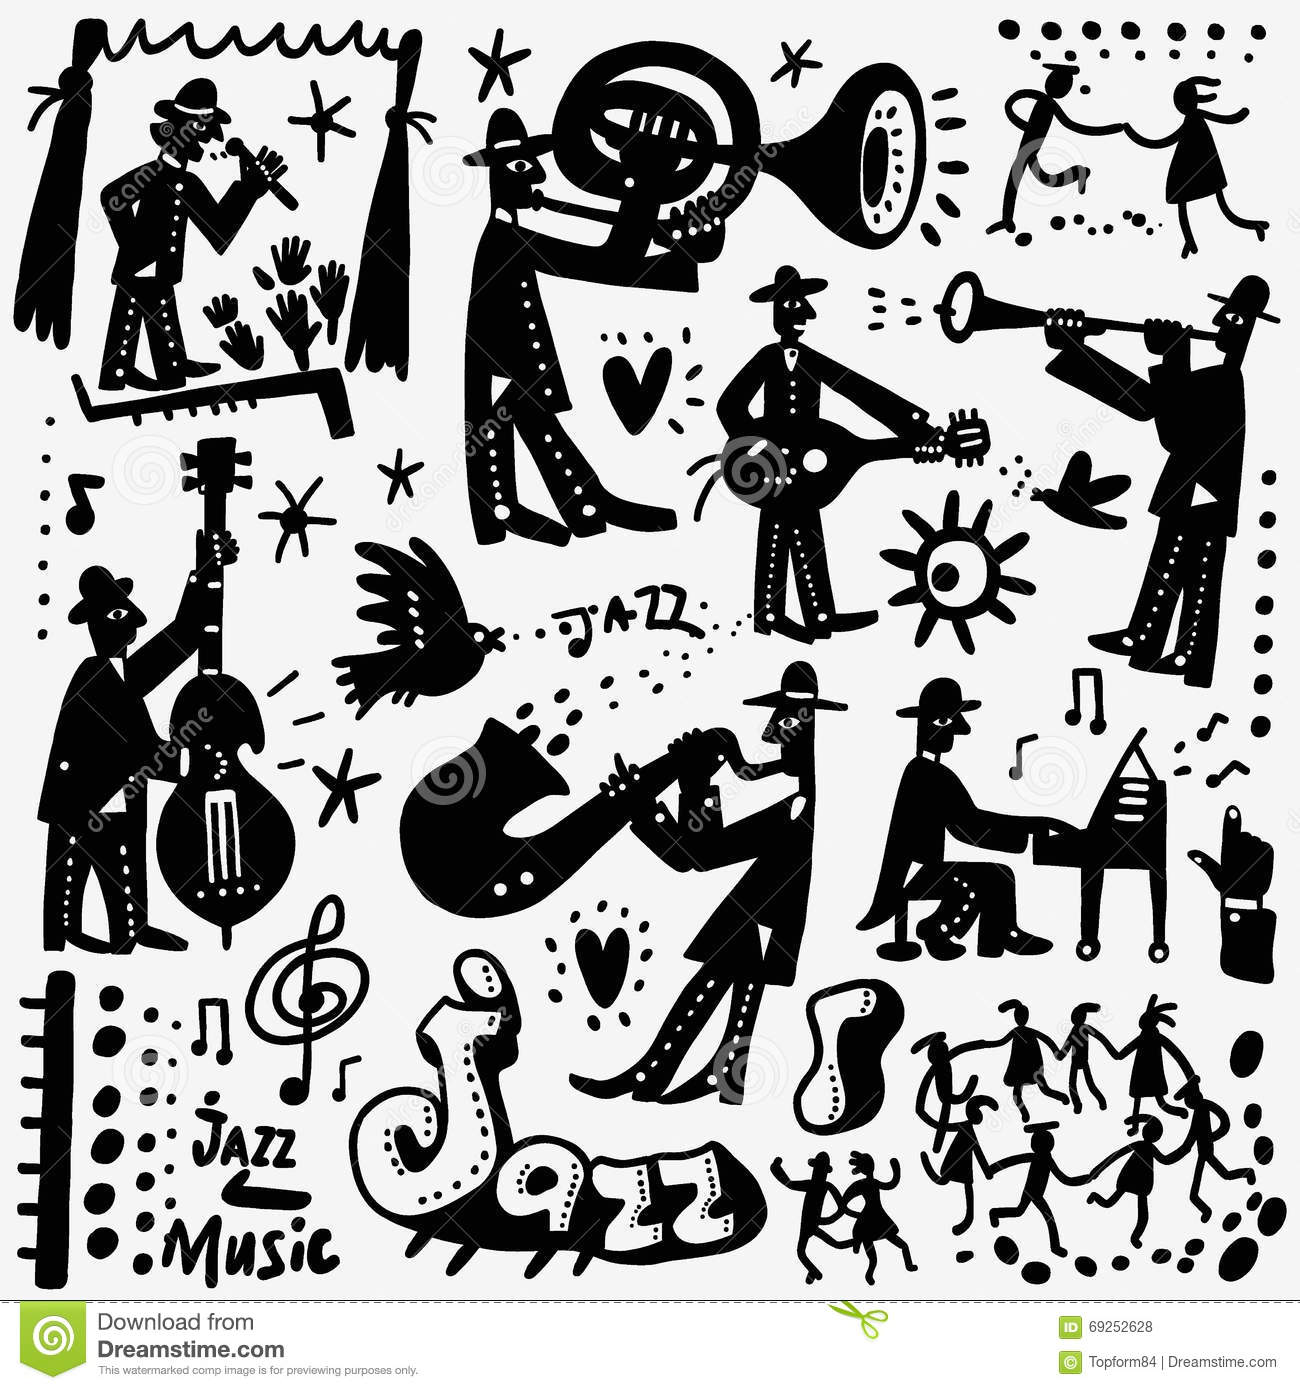 Free Jazz Cartoon Cliparts, Download Free Clip Art, Free ...